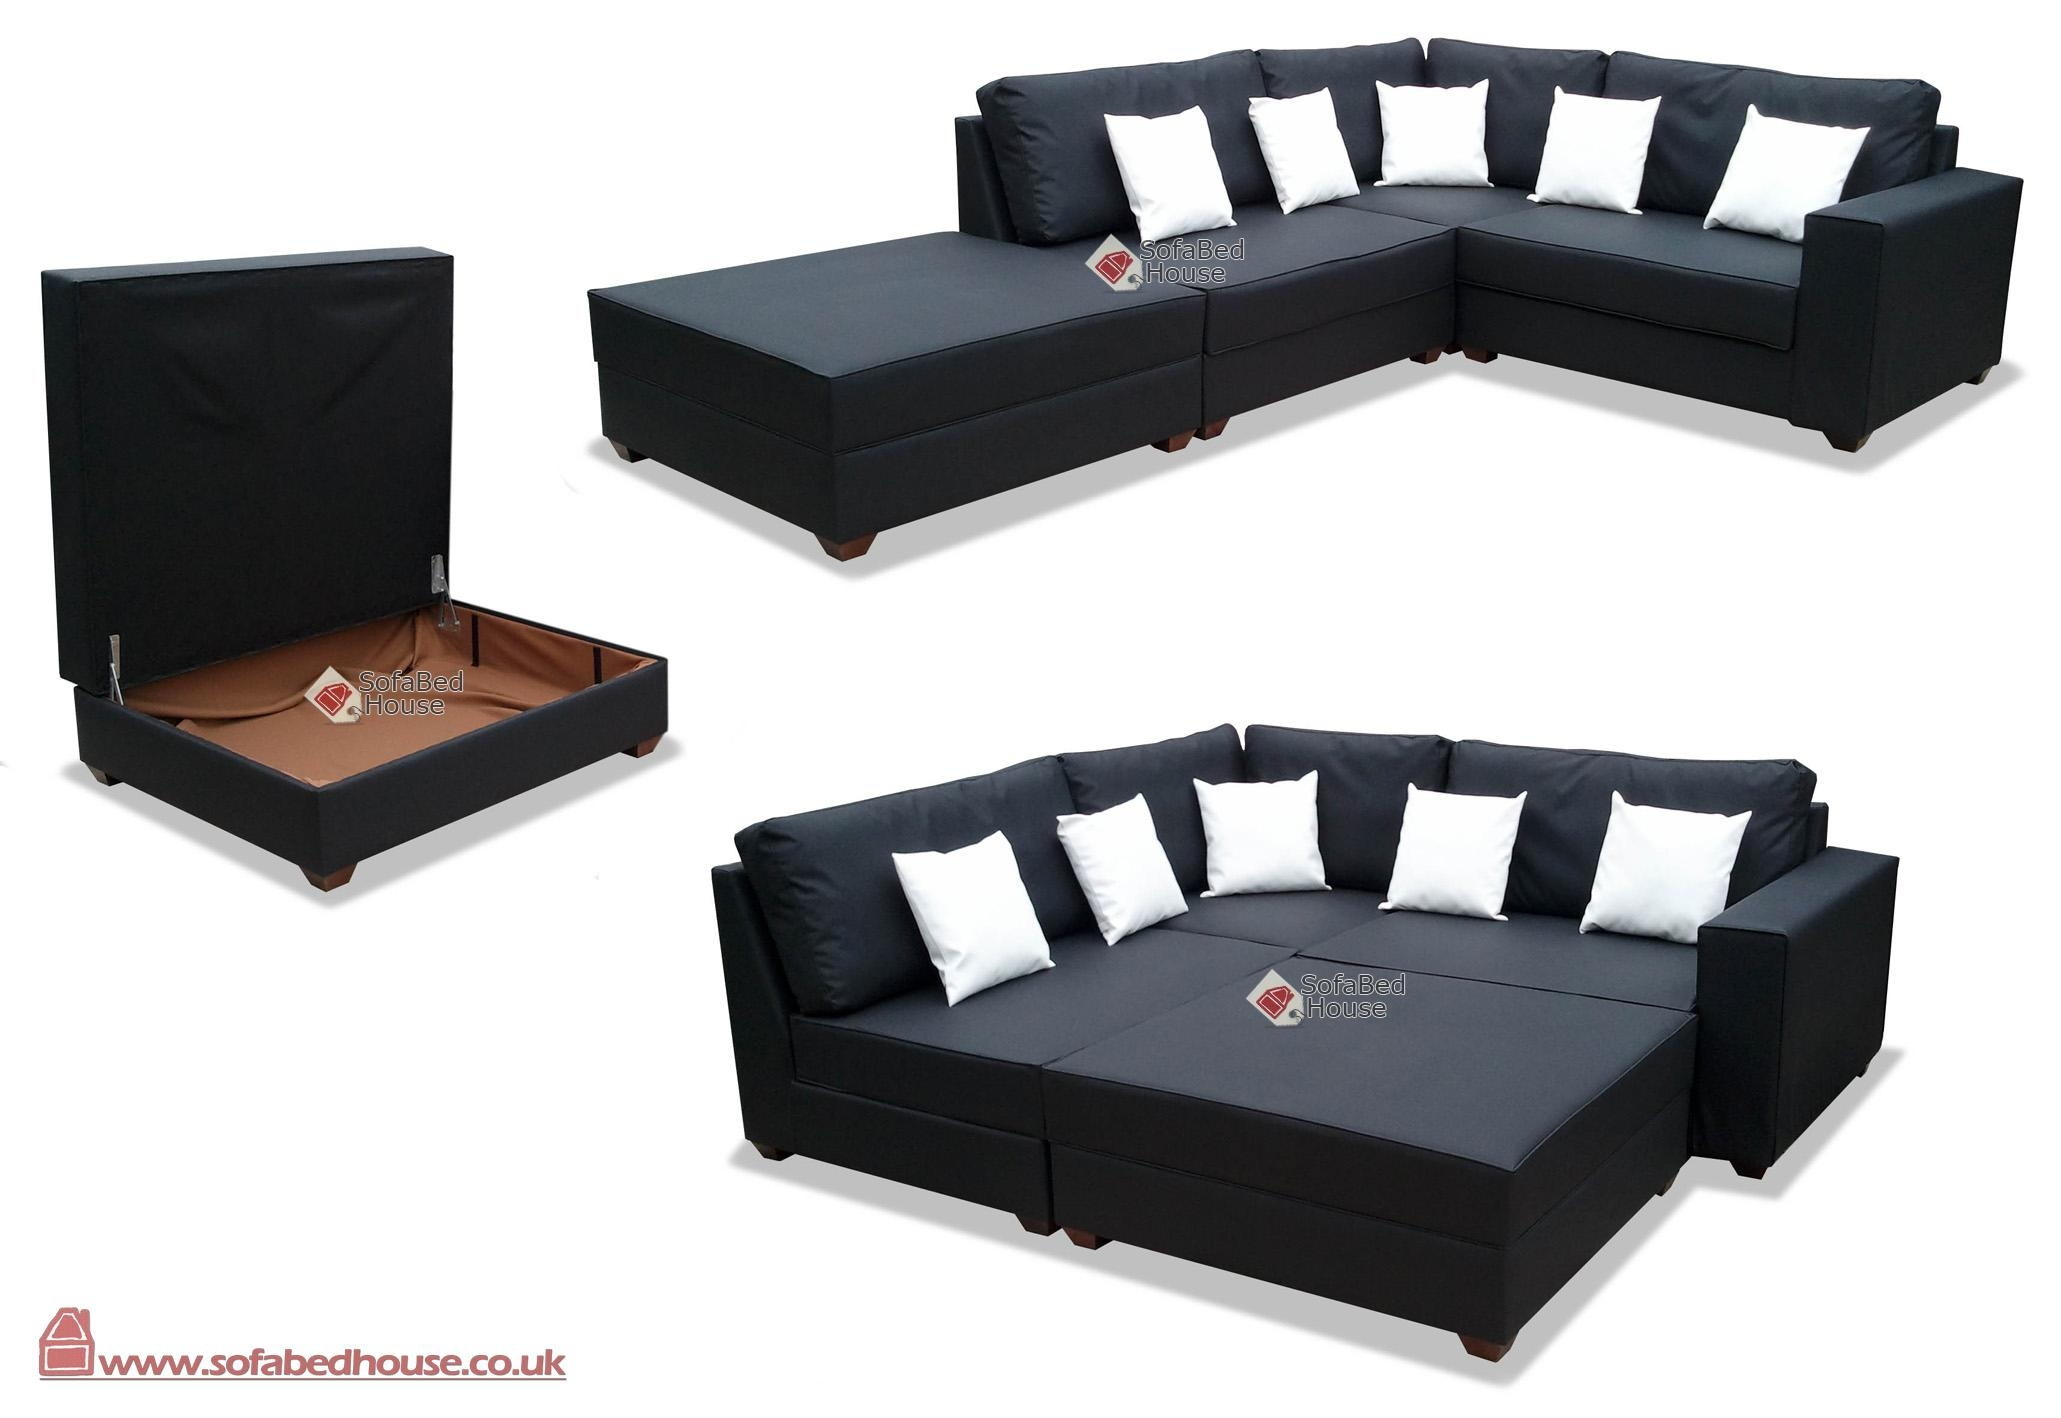 Cheap Corner Sofa Beds Uk | Crepeloversca Pertaining To Cheap Corner Sofa Beds (View 2 of 20)